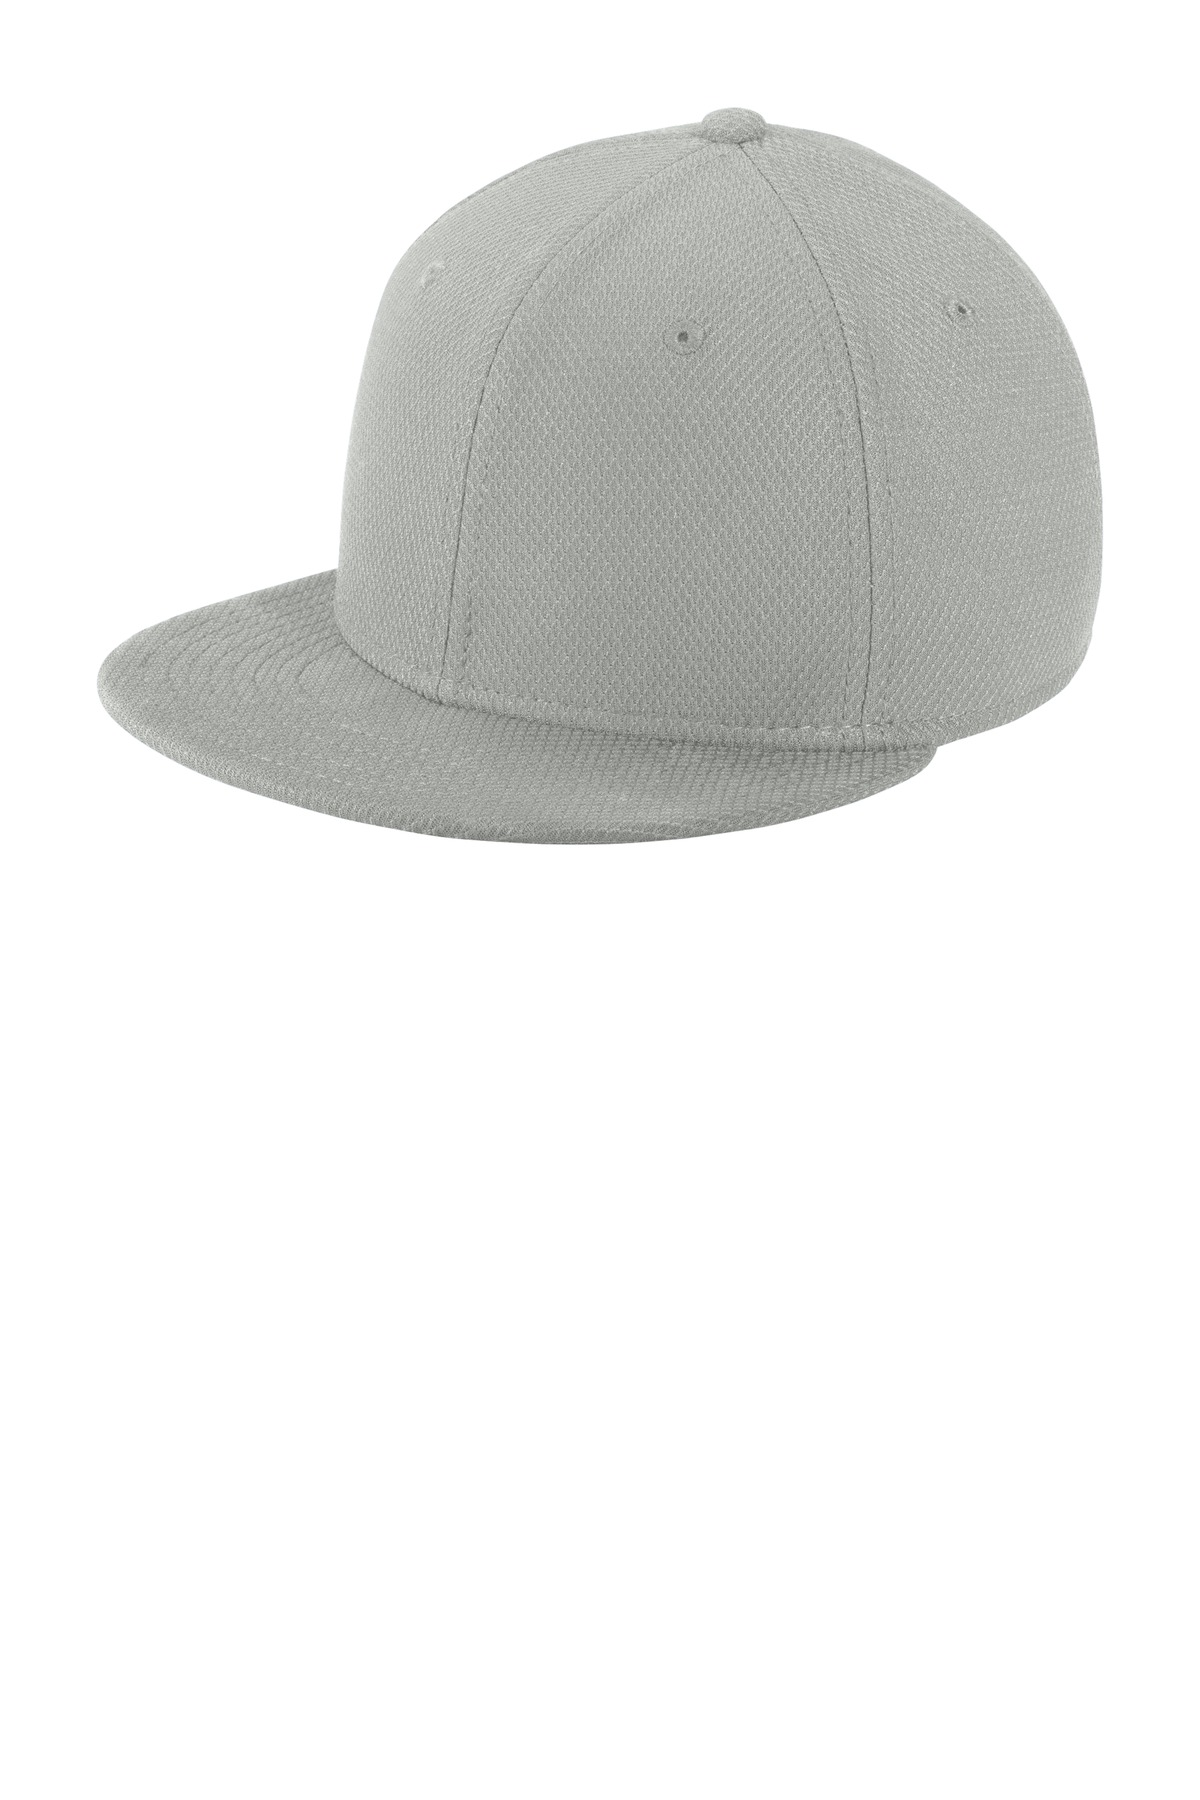 New Era  ®  Youth Original Fit Diamond Era Flat Bill Snapback Cap. NE304 - Grey